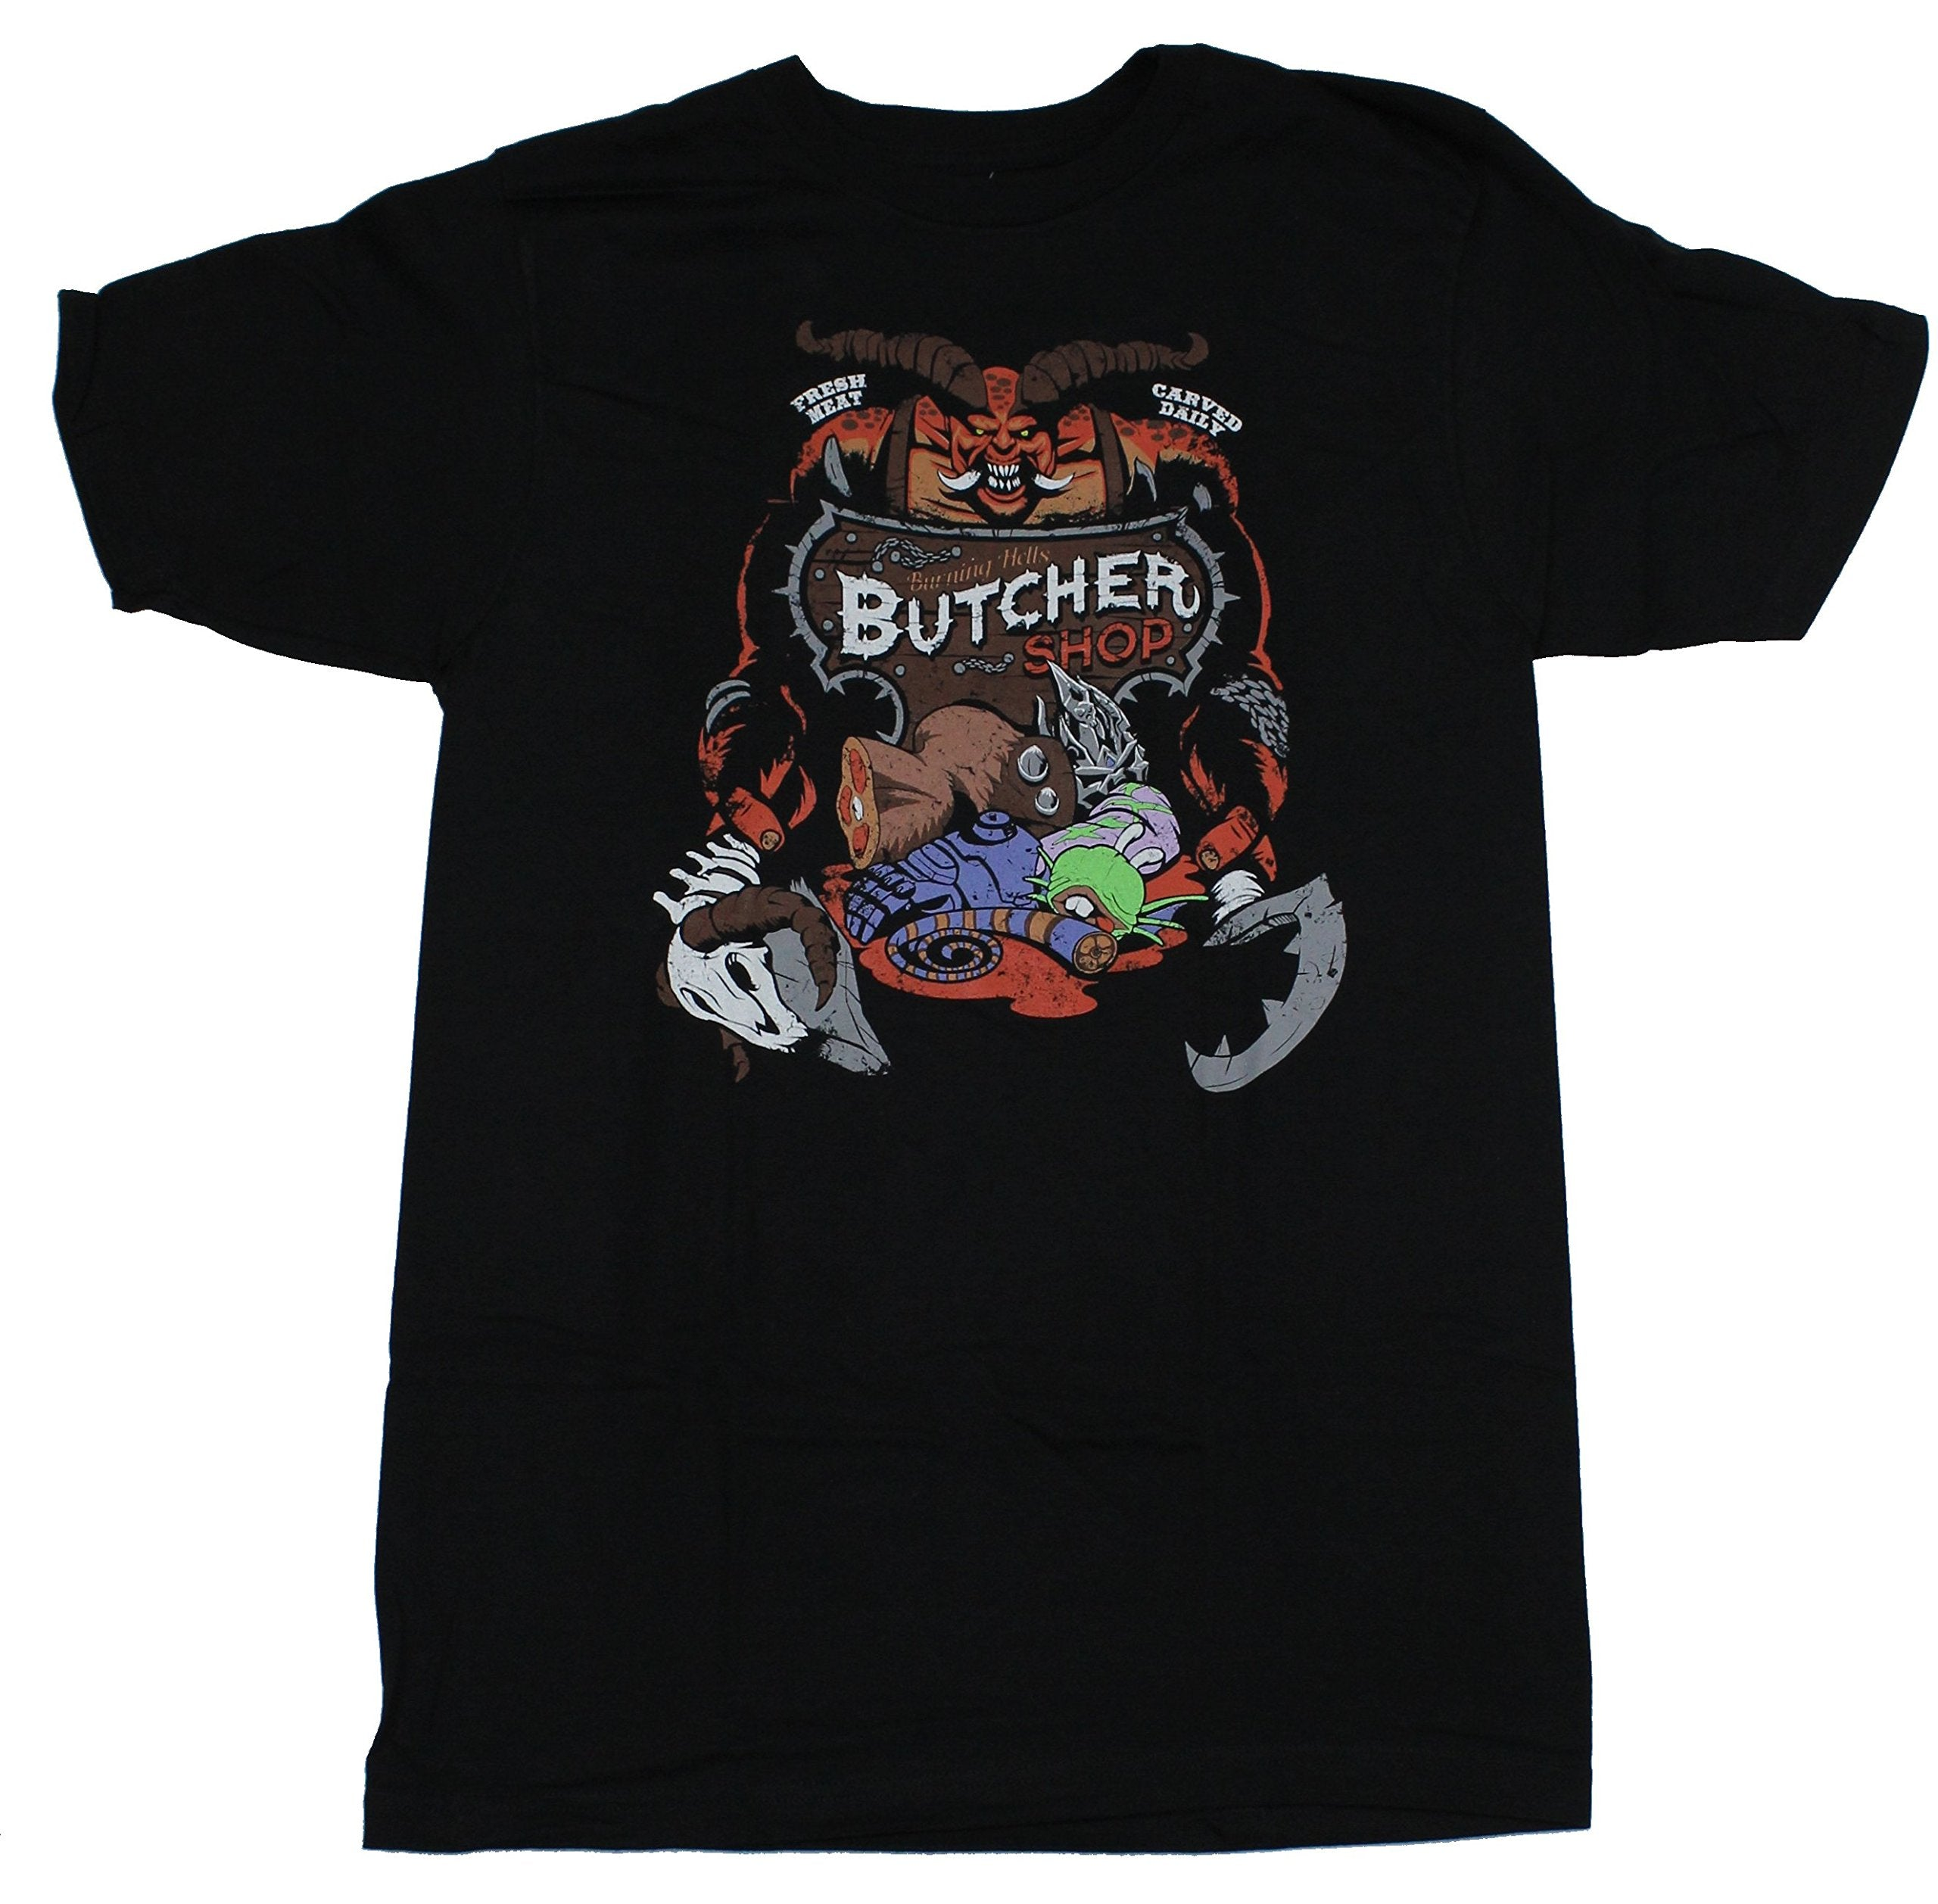 Heroes of the Storm Mens T-Shirt - Burning Hell's Butcher Shop Image